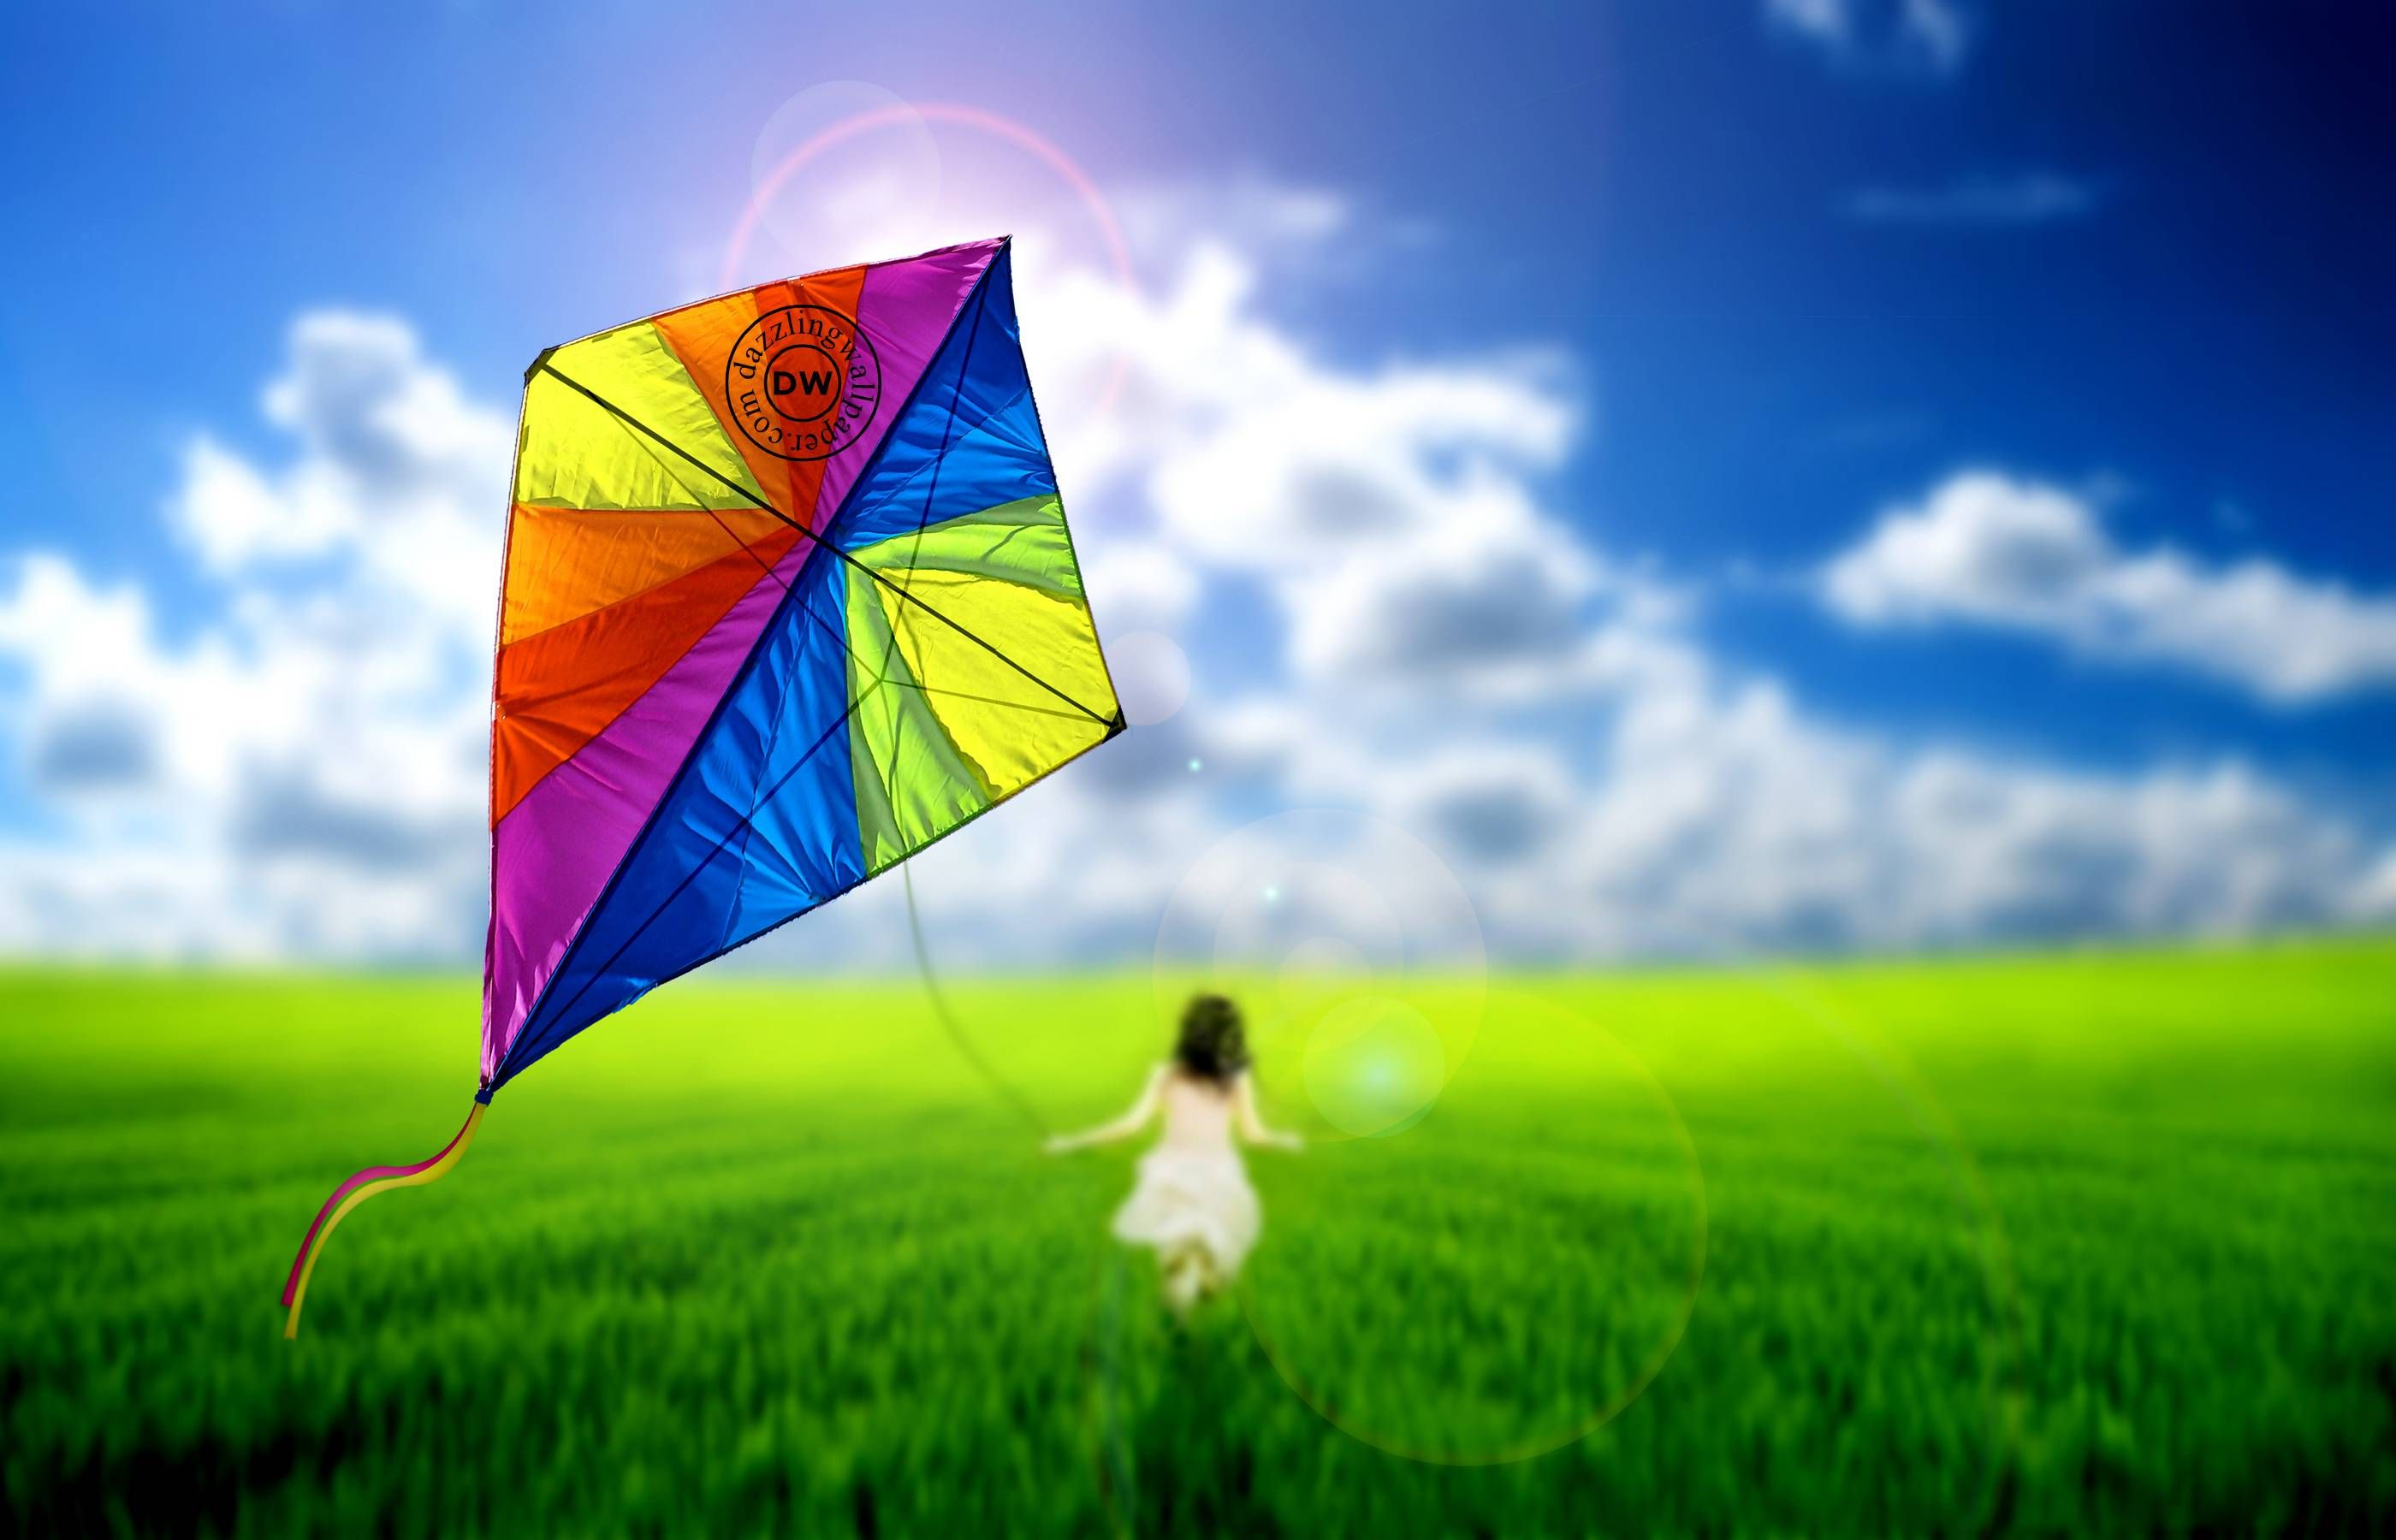 Kite Wallpapers - Wallpaper Cave | Free Wallpapers | Pinterest ...